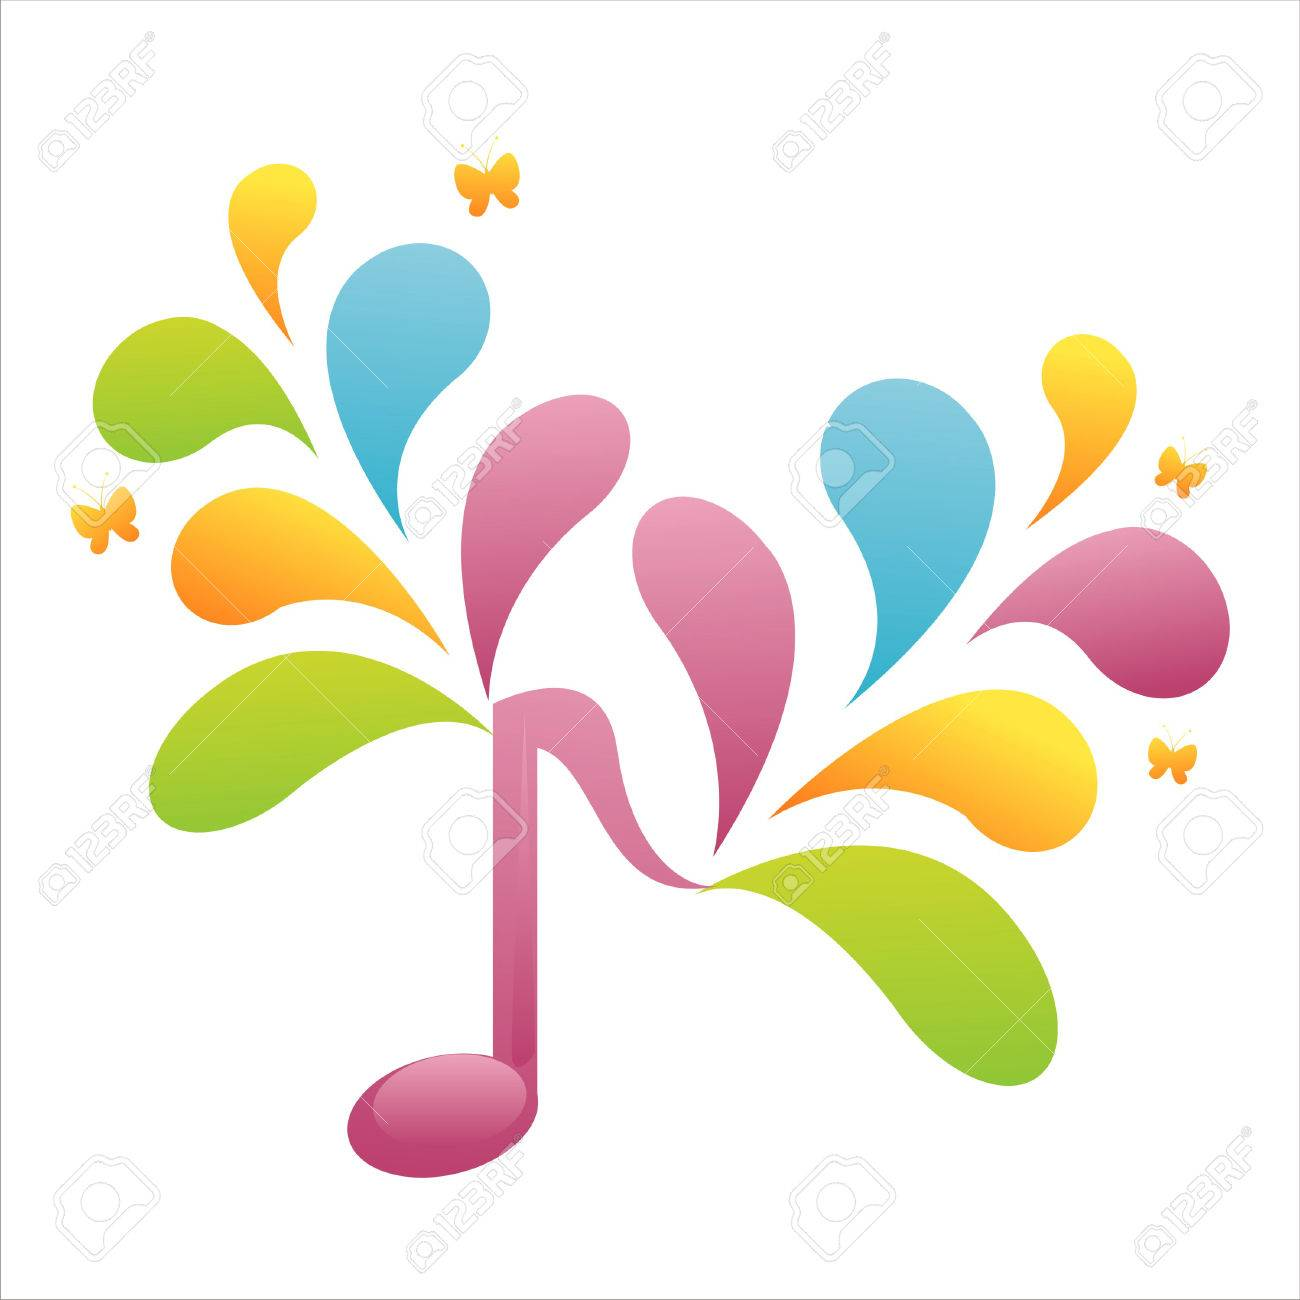 Colorful Musical Notes in 2020 | Music symbols, Music notes decorations, Clip  art borders